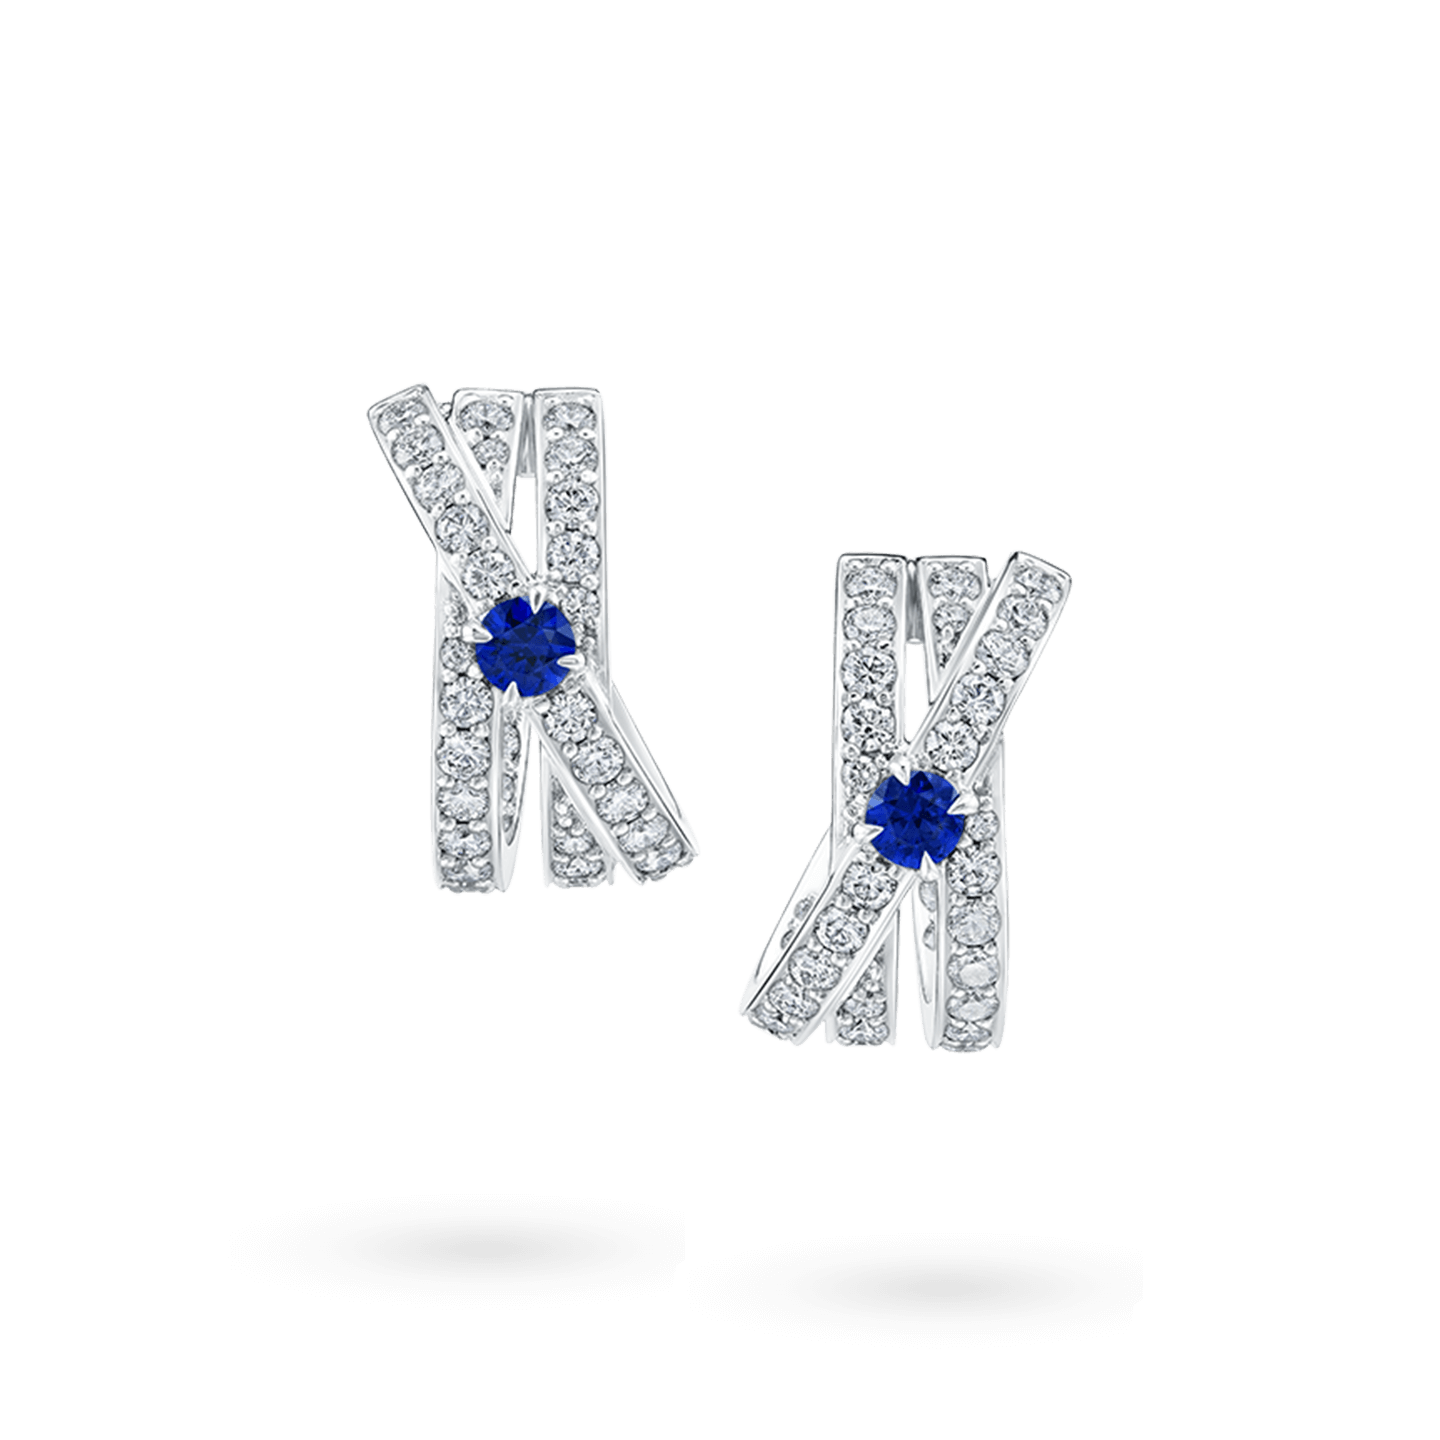 Crossover Sapphire Earrings, Product Image 1